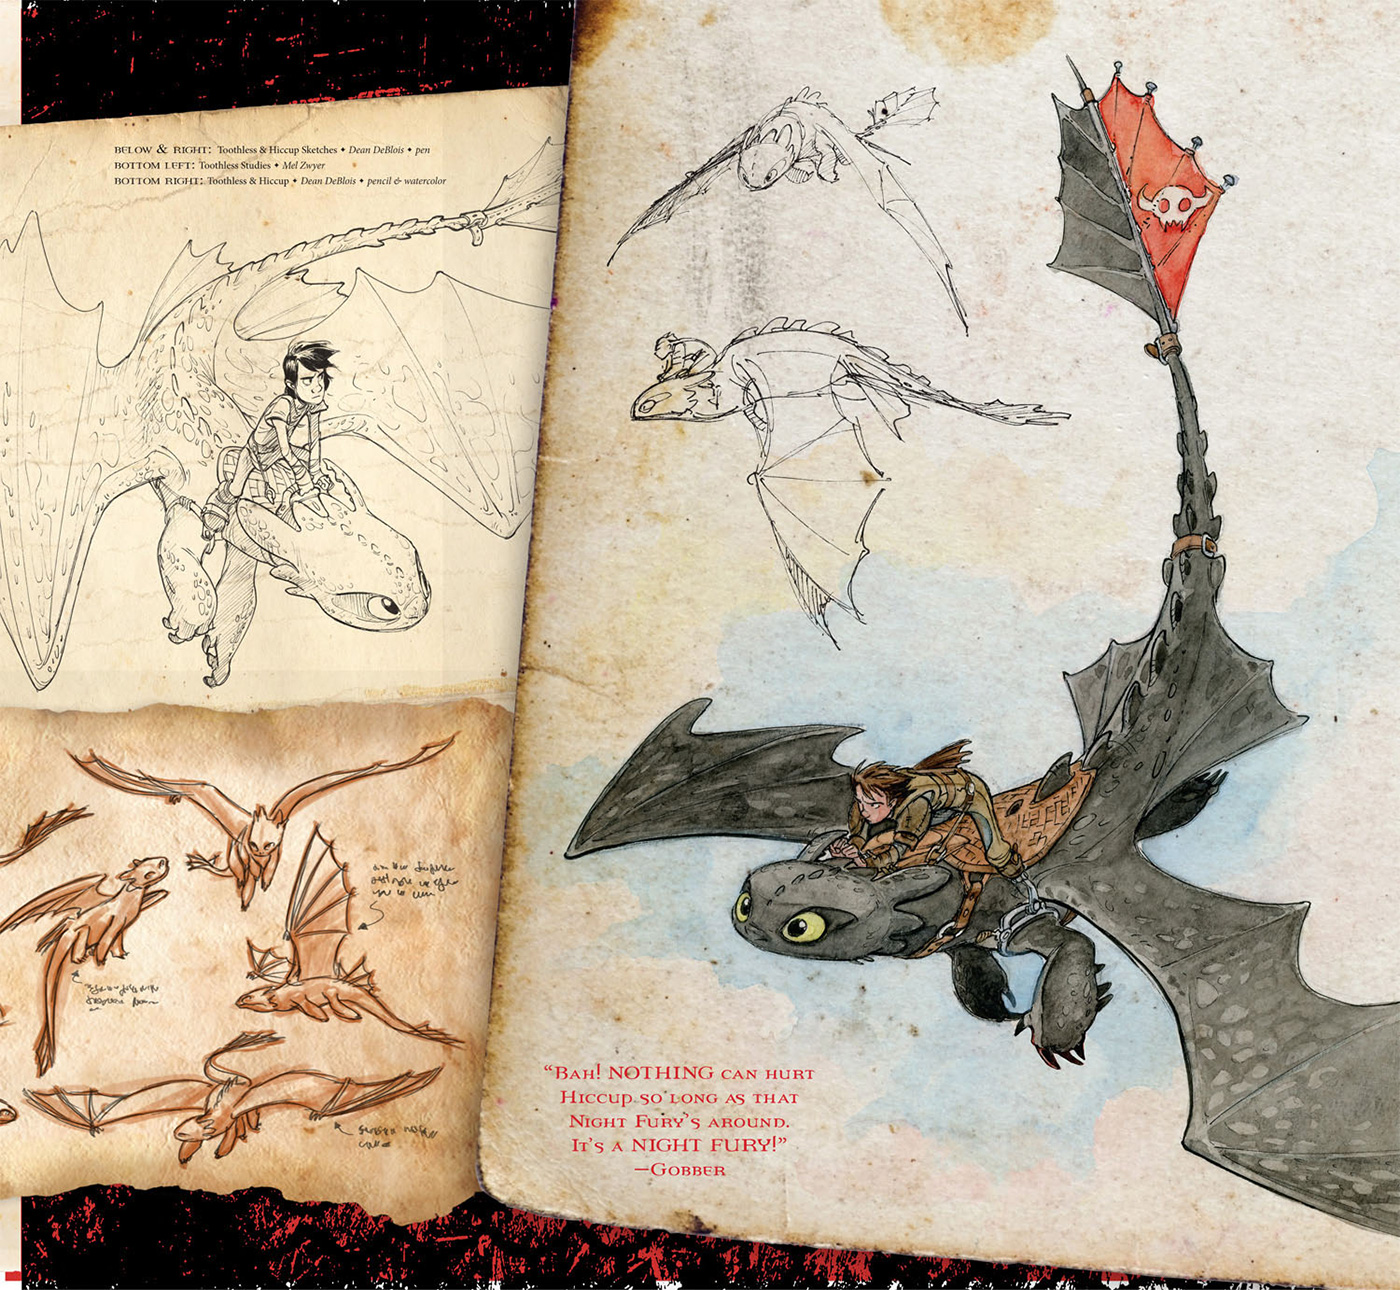 The art of how to train your dragon 2 linda sunshine titan books the art of how to train your dragon 2 linda sunshine titan books ccuart Image collections